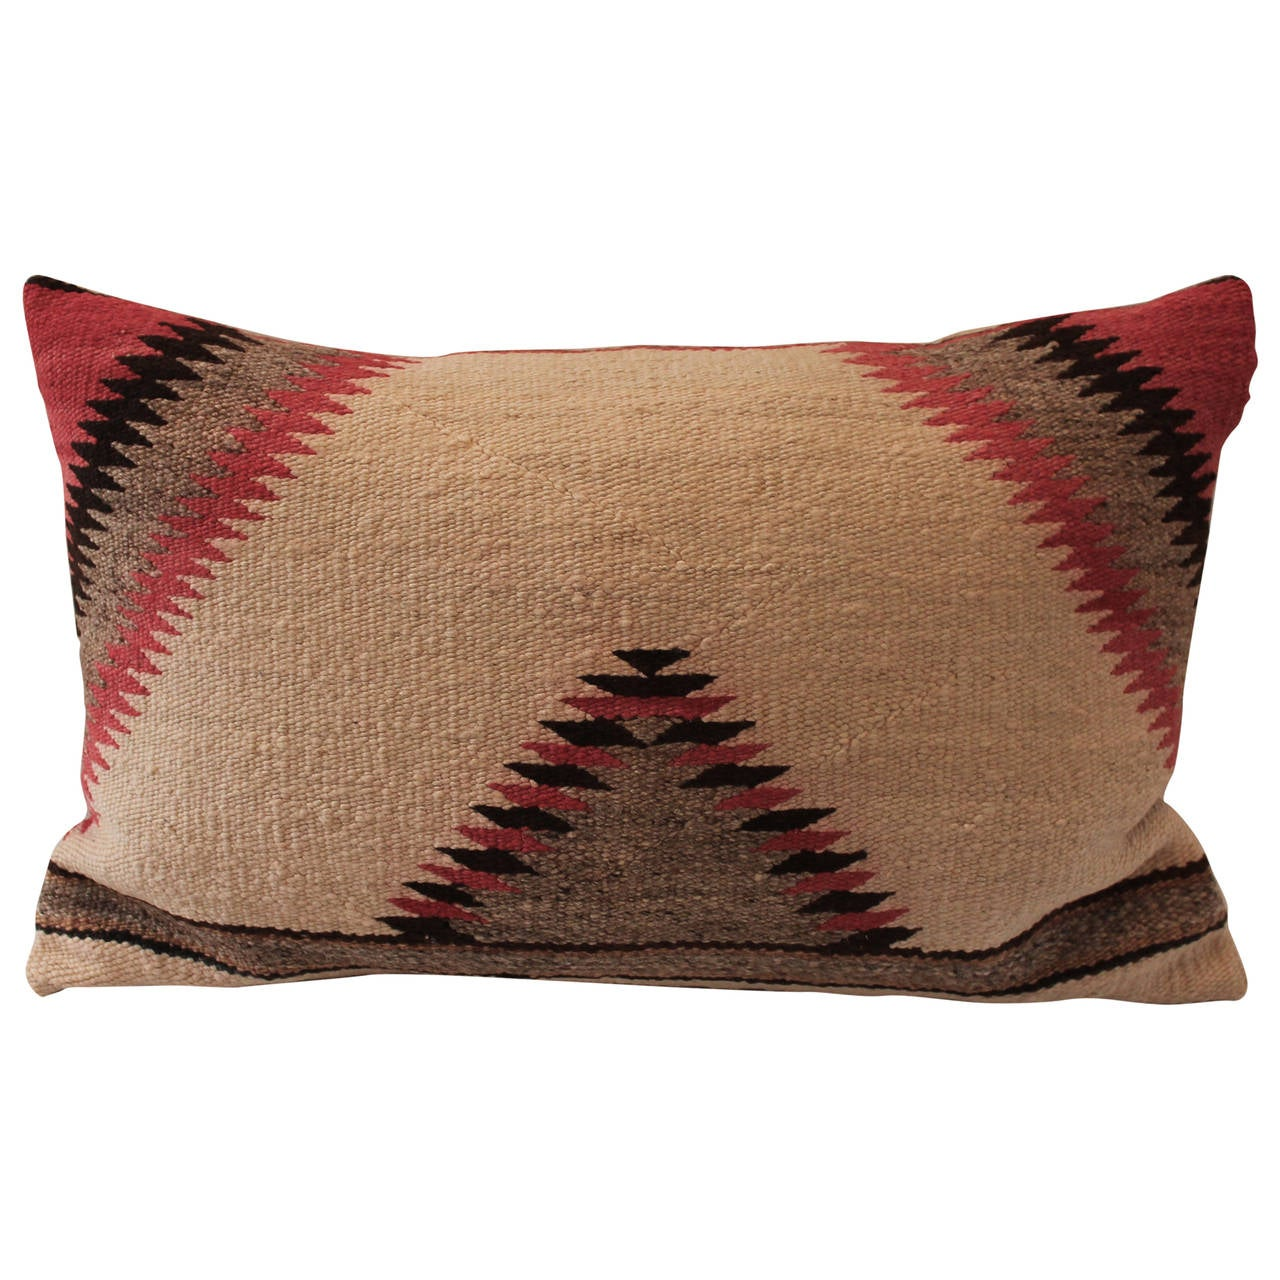 Sawtooth Pattern Navajo Indian Weaving Pillow At 1stdibs